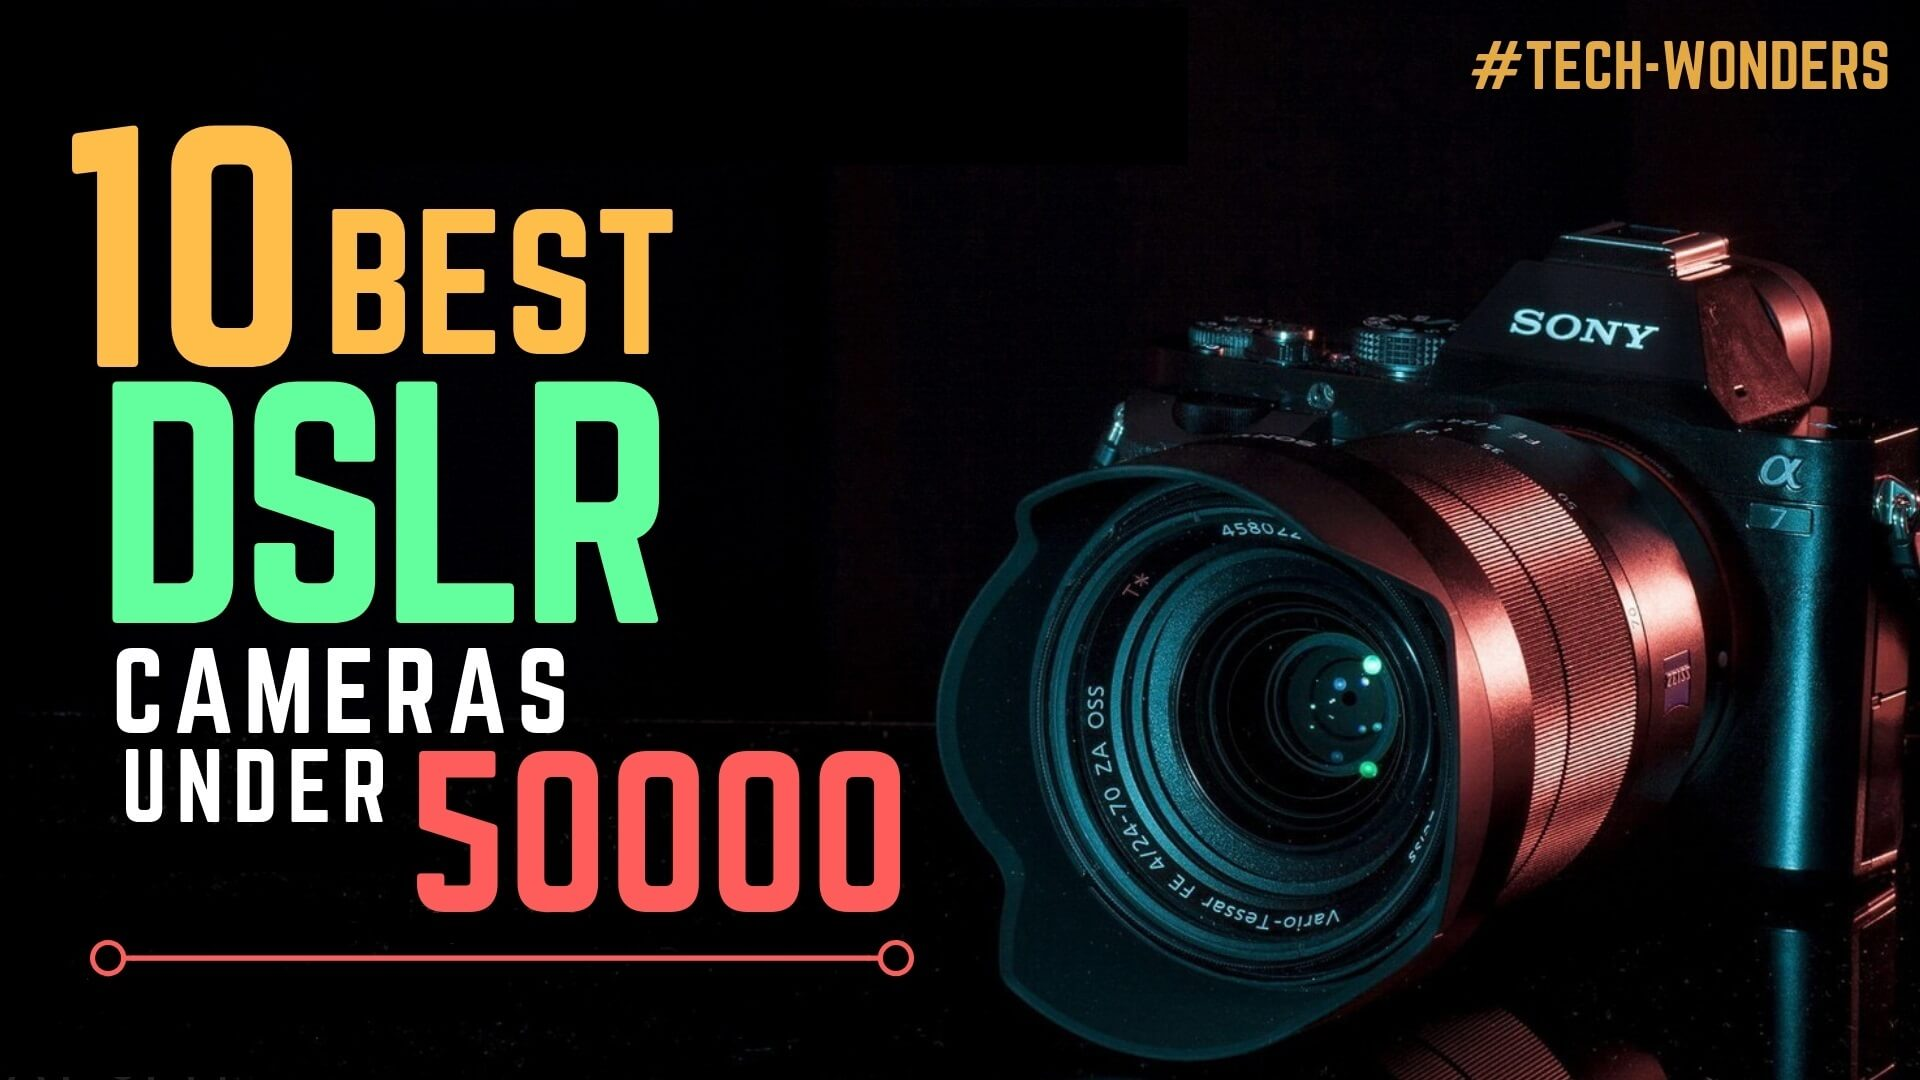 10 Best DSLR Cameras Under 50000 Rs in India 2018